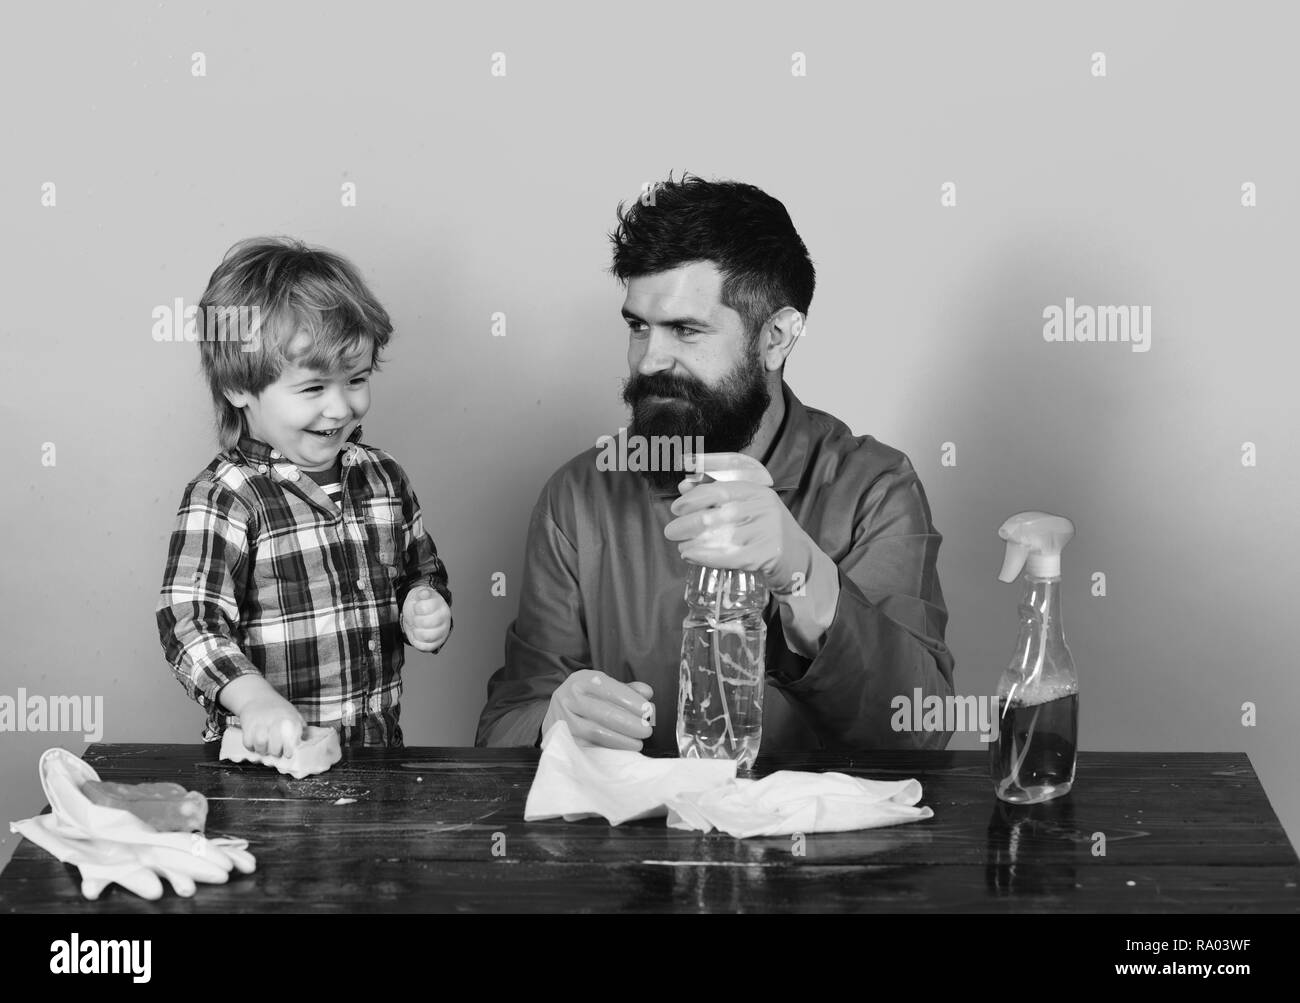 Guy with beard and mustache with rubber gloves holds spray. Man with smiling child at wooden table on blue background. Father and son plays with cleaning props. Cleaning activities concept. - Stock Image